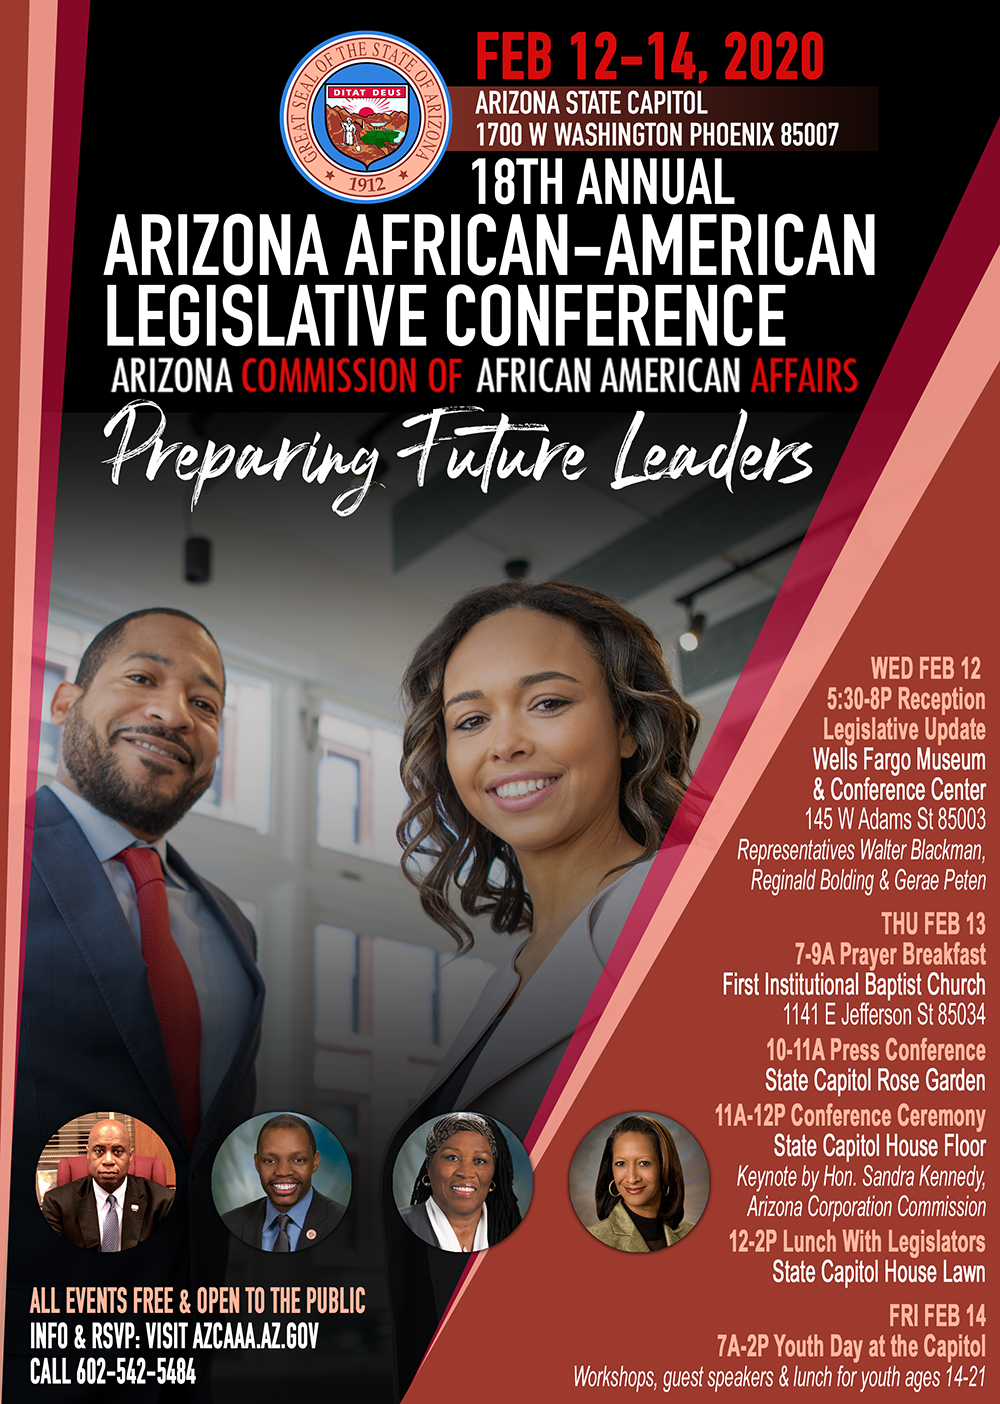 18th Annual Arizona African-American Legislative Conference Flyer